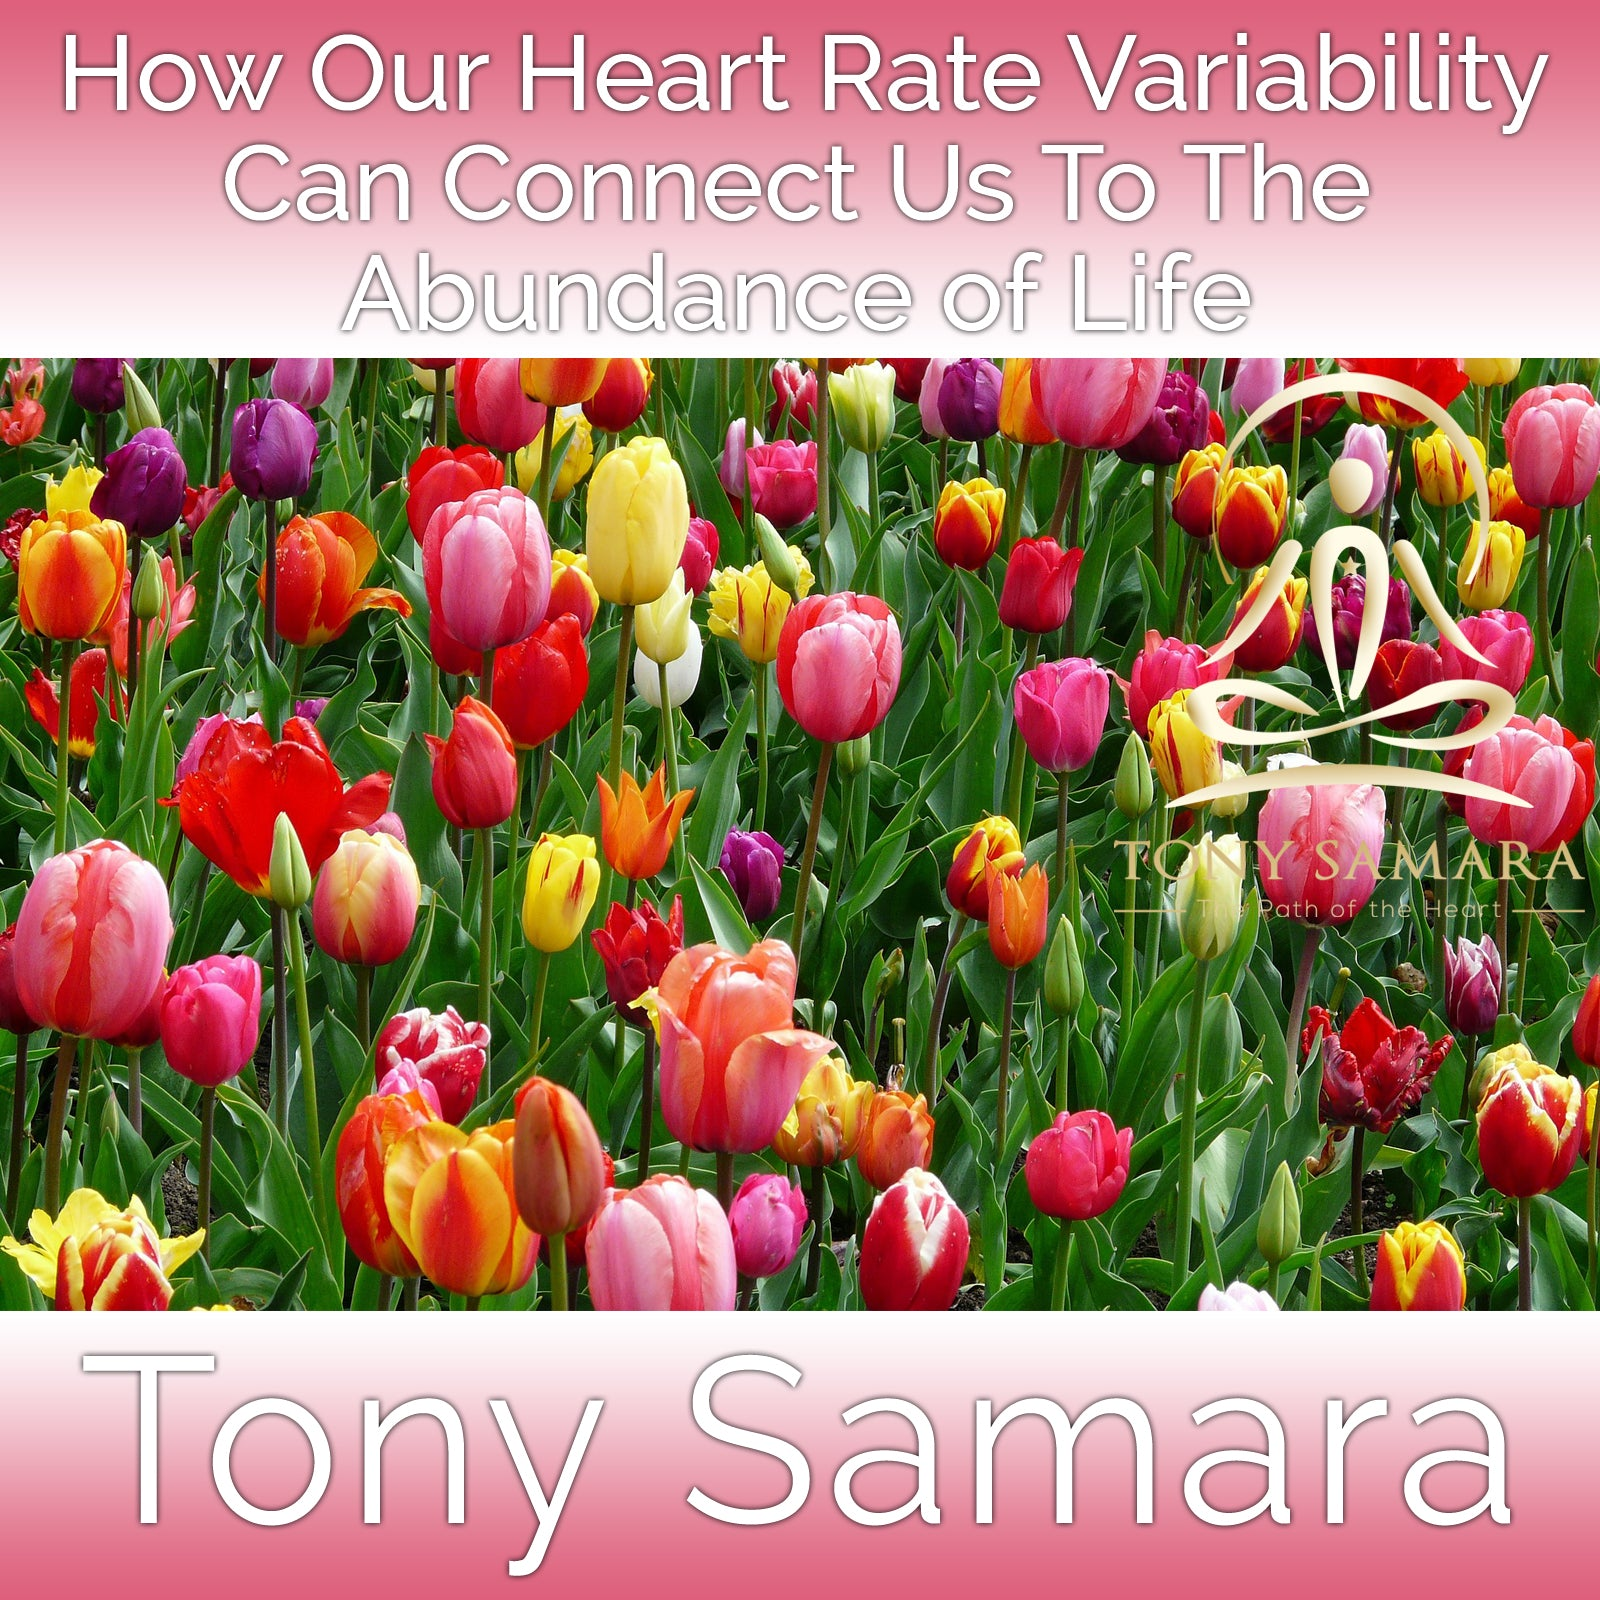 How Our Heart Rate Variability Can Connect Us To The Abundance of Life (MP3 Audio Download) - Tony Samara Meditation